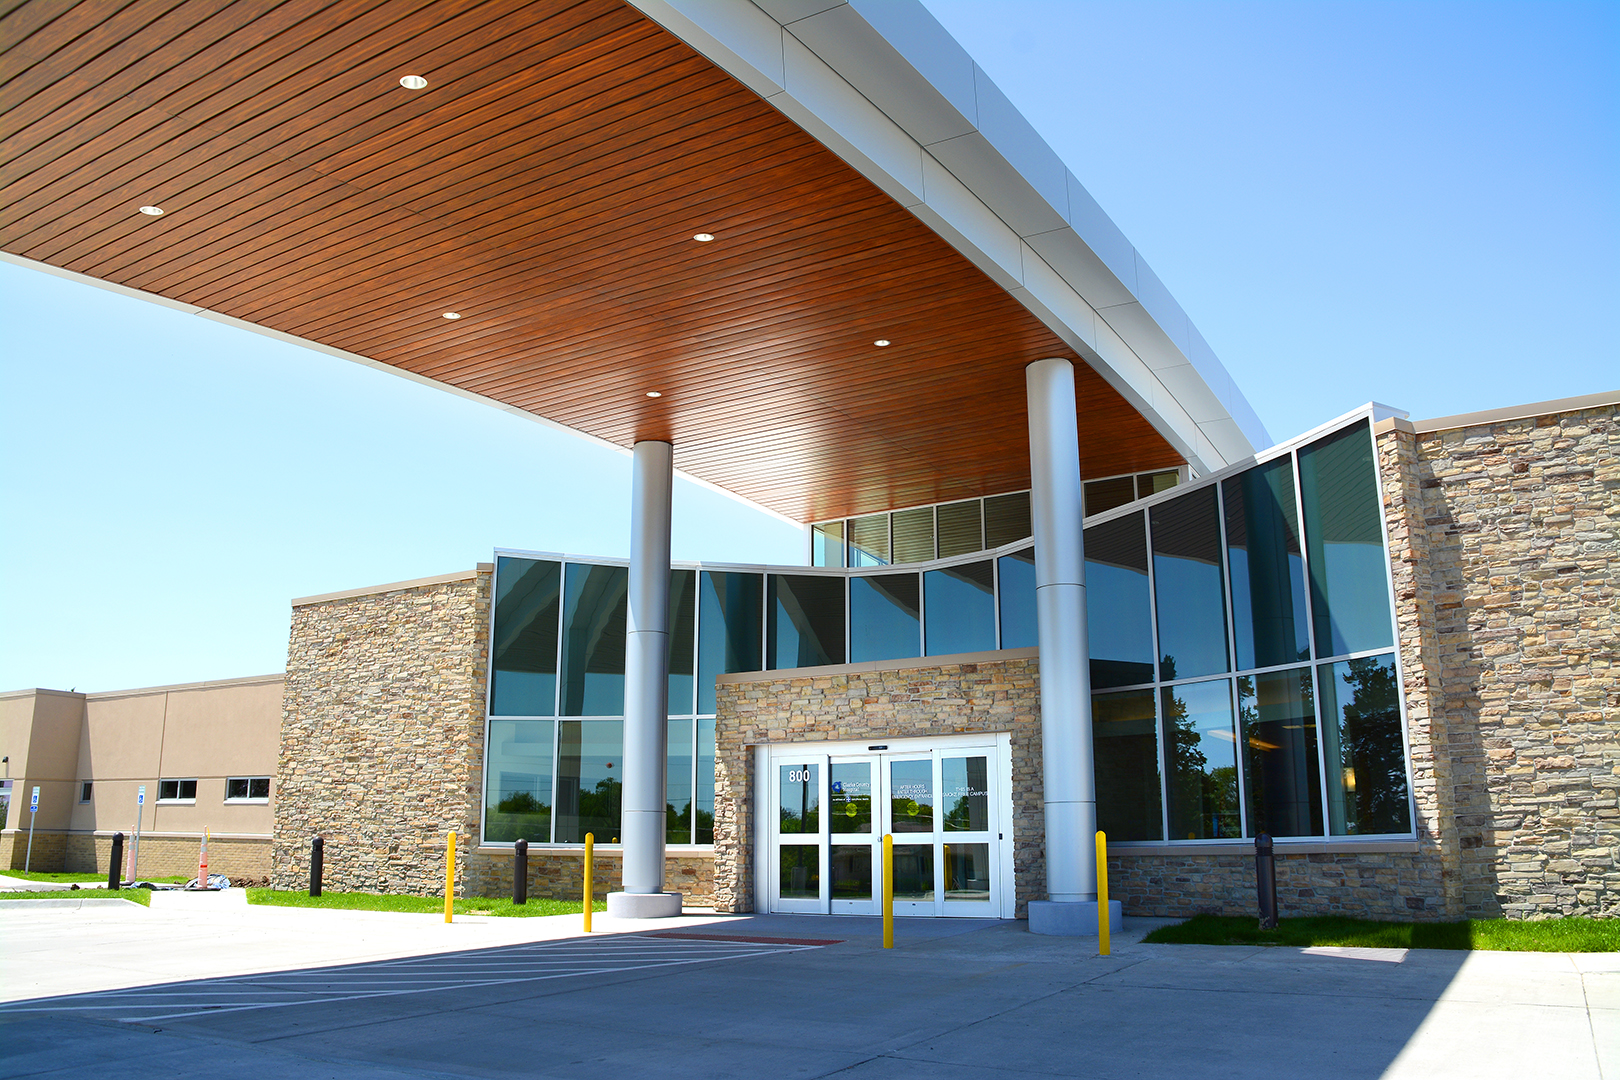 Clarke County Hospital Expansion - Osceola, Iowa